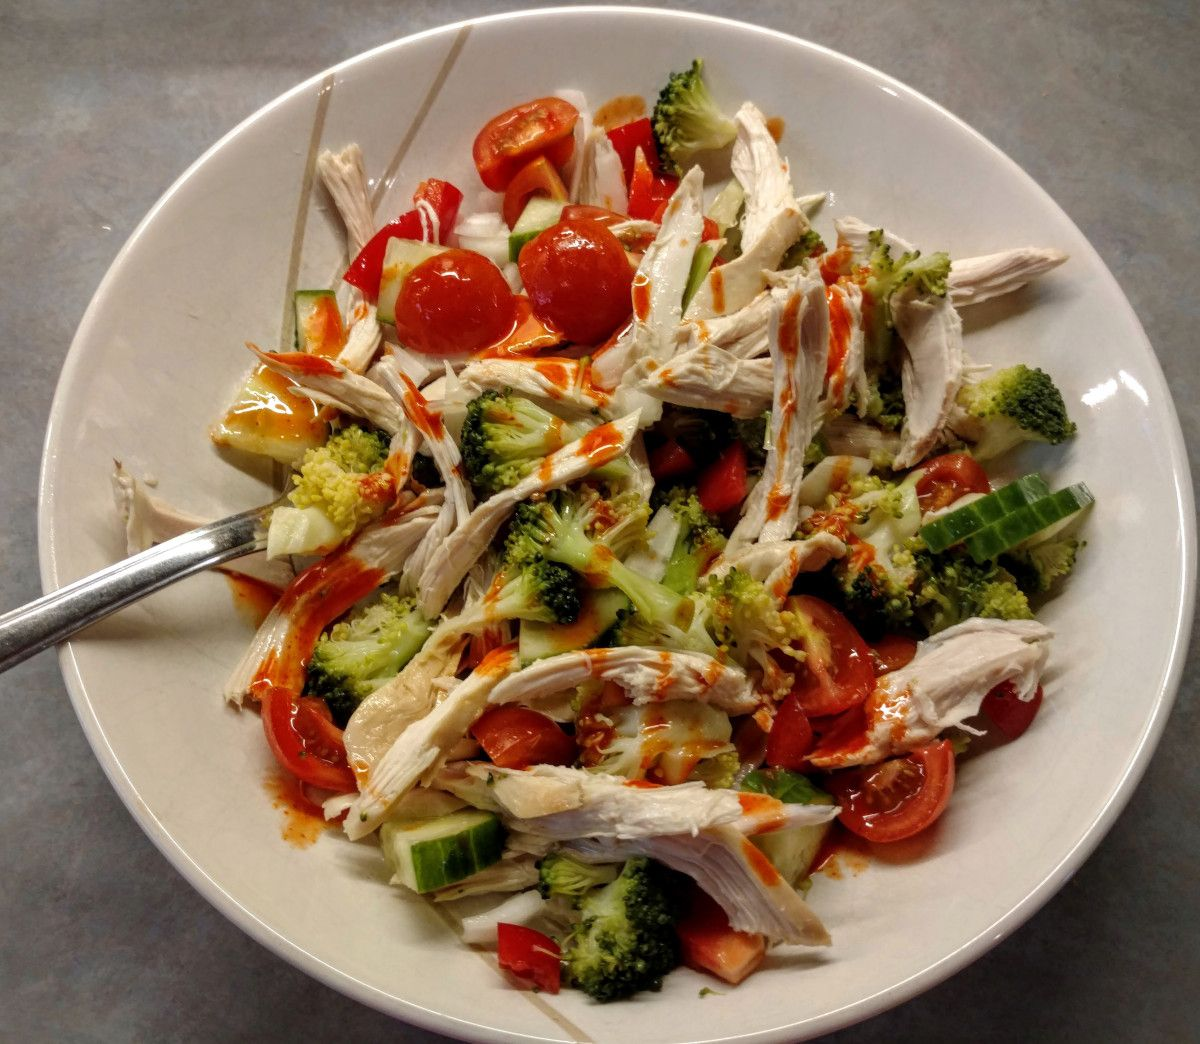 Low-cal chicken salad made in minutes  The Mum Reviews #foodiefriday